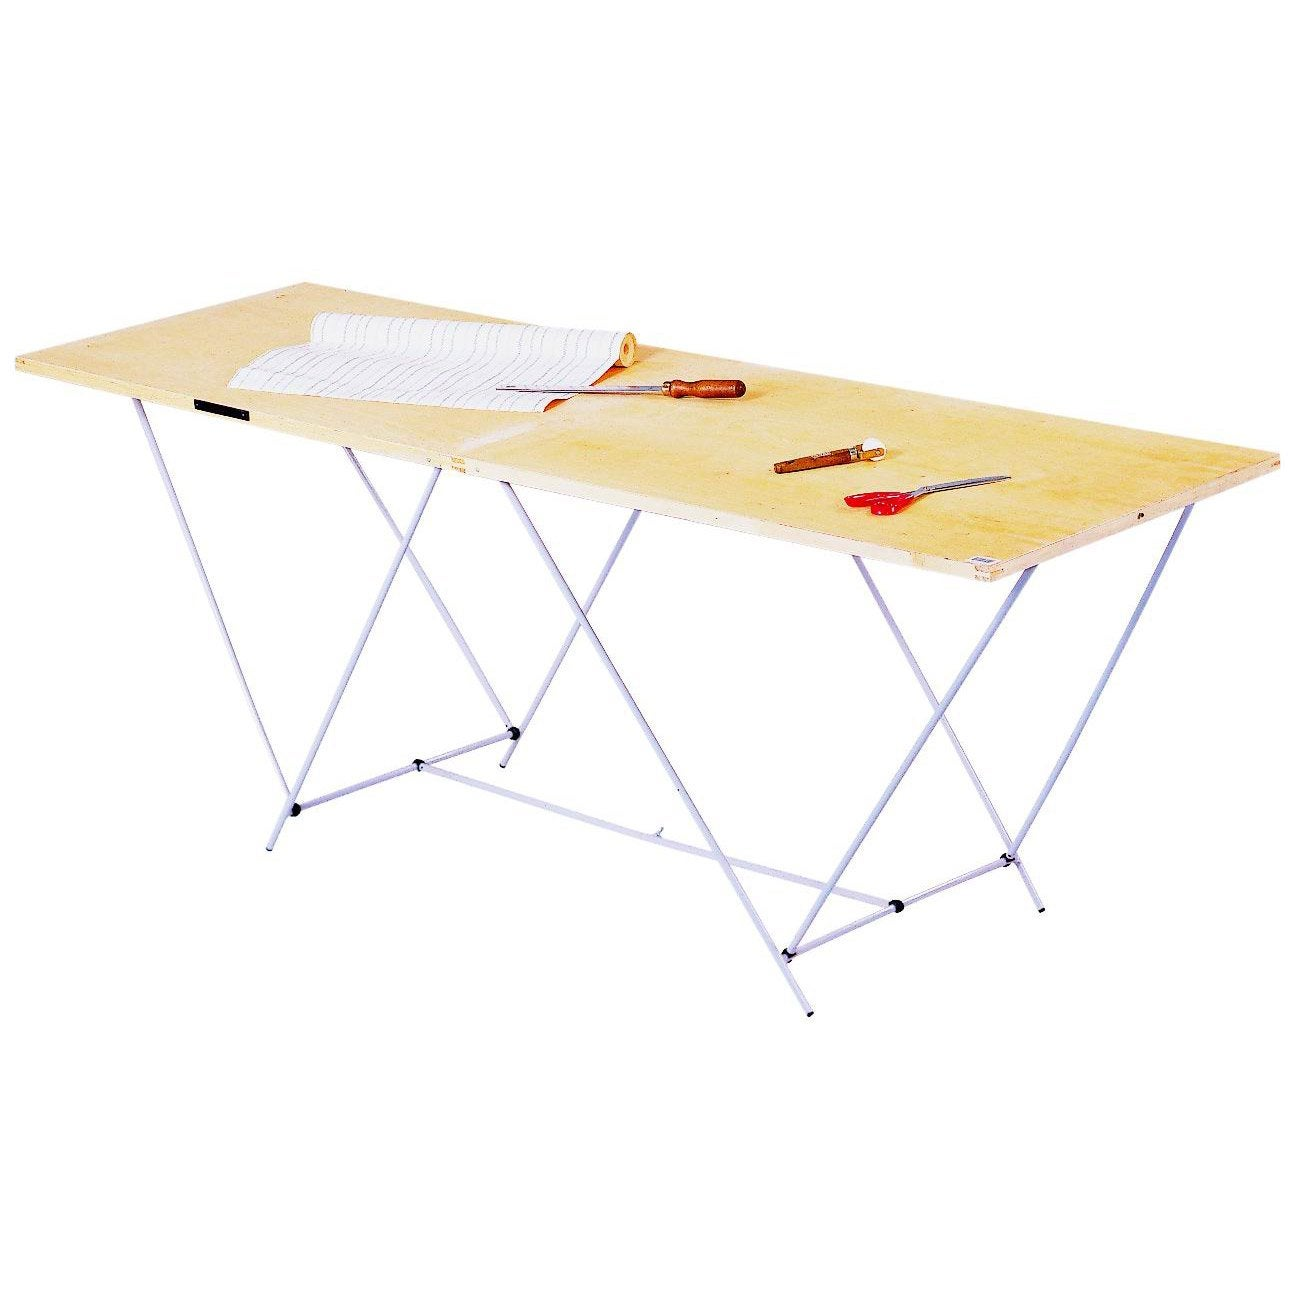 Table tapisser pliante ocai 60 cm x 2 m leroy merlin for Table cuisine leroy merlin